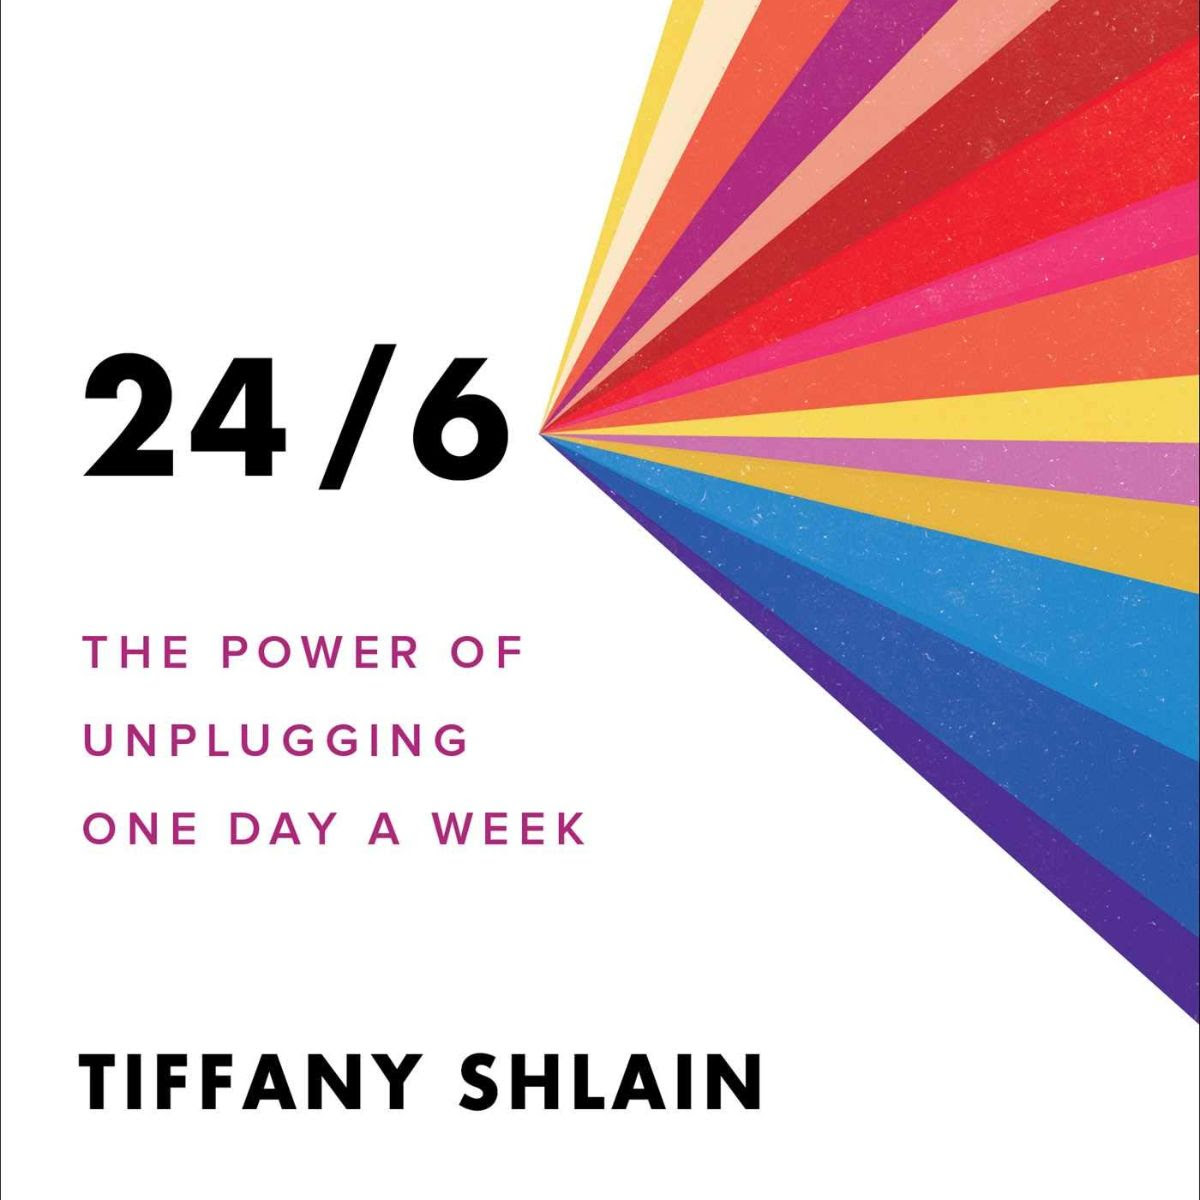 Colorful book cover of 24/6 The power of unplugging one day a week by Tiffany shlain